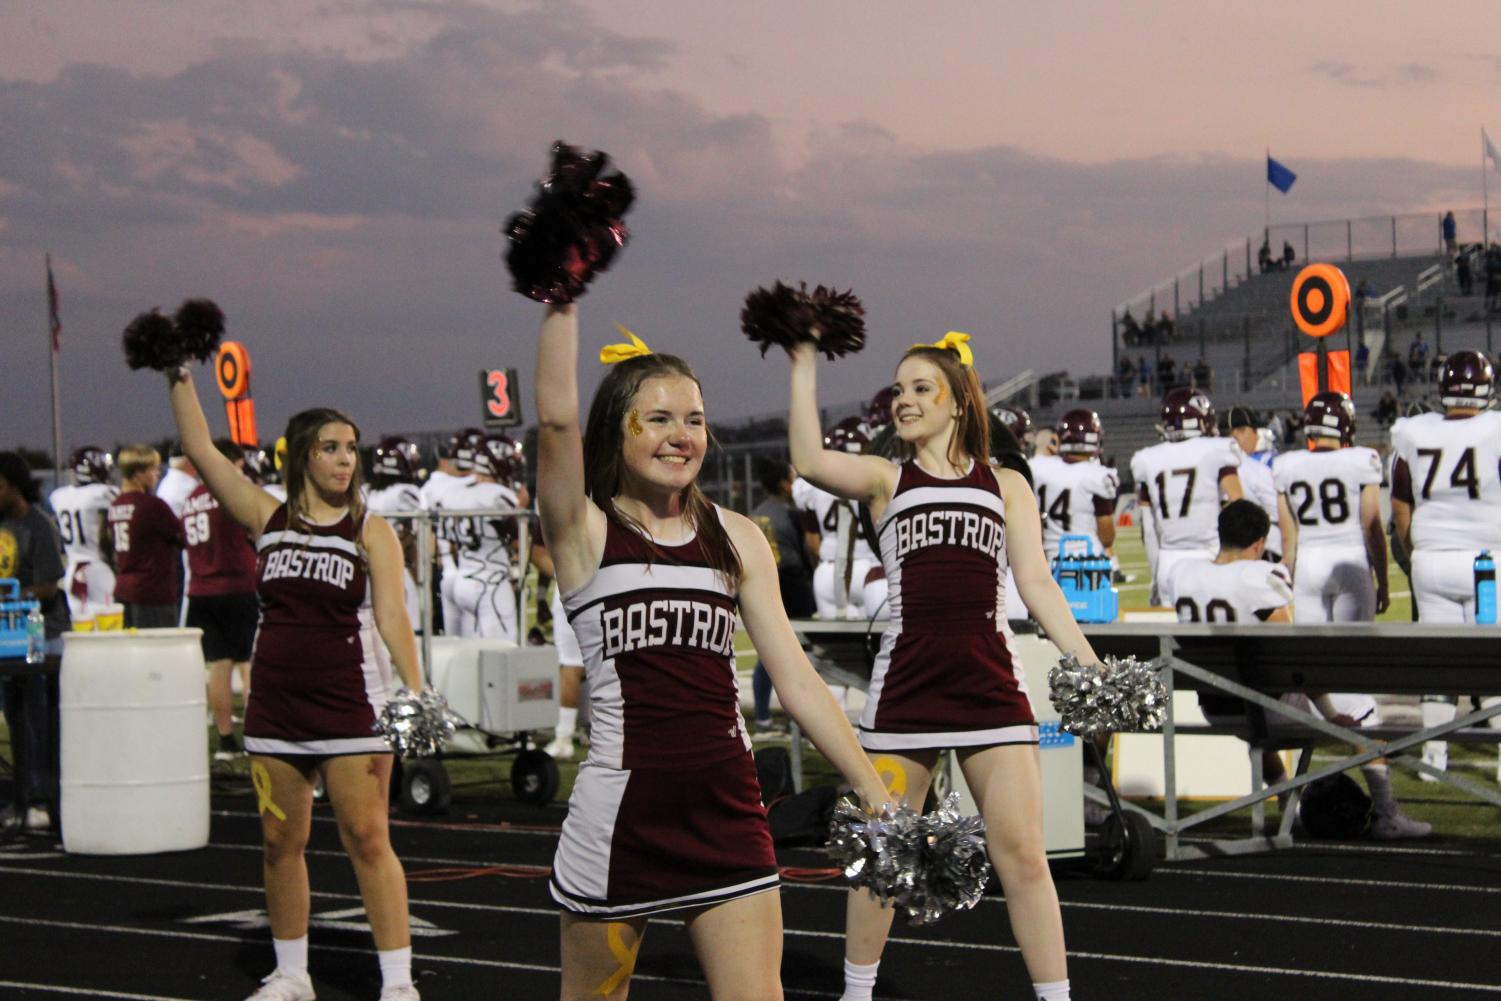 Senior Mary Smalley, and sophomores Madeline Coats and Madeleine Aston hype up the crowd at the Bastrop Gold Out game on October 4 at Memorial stadium.